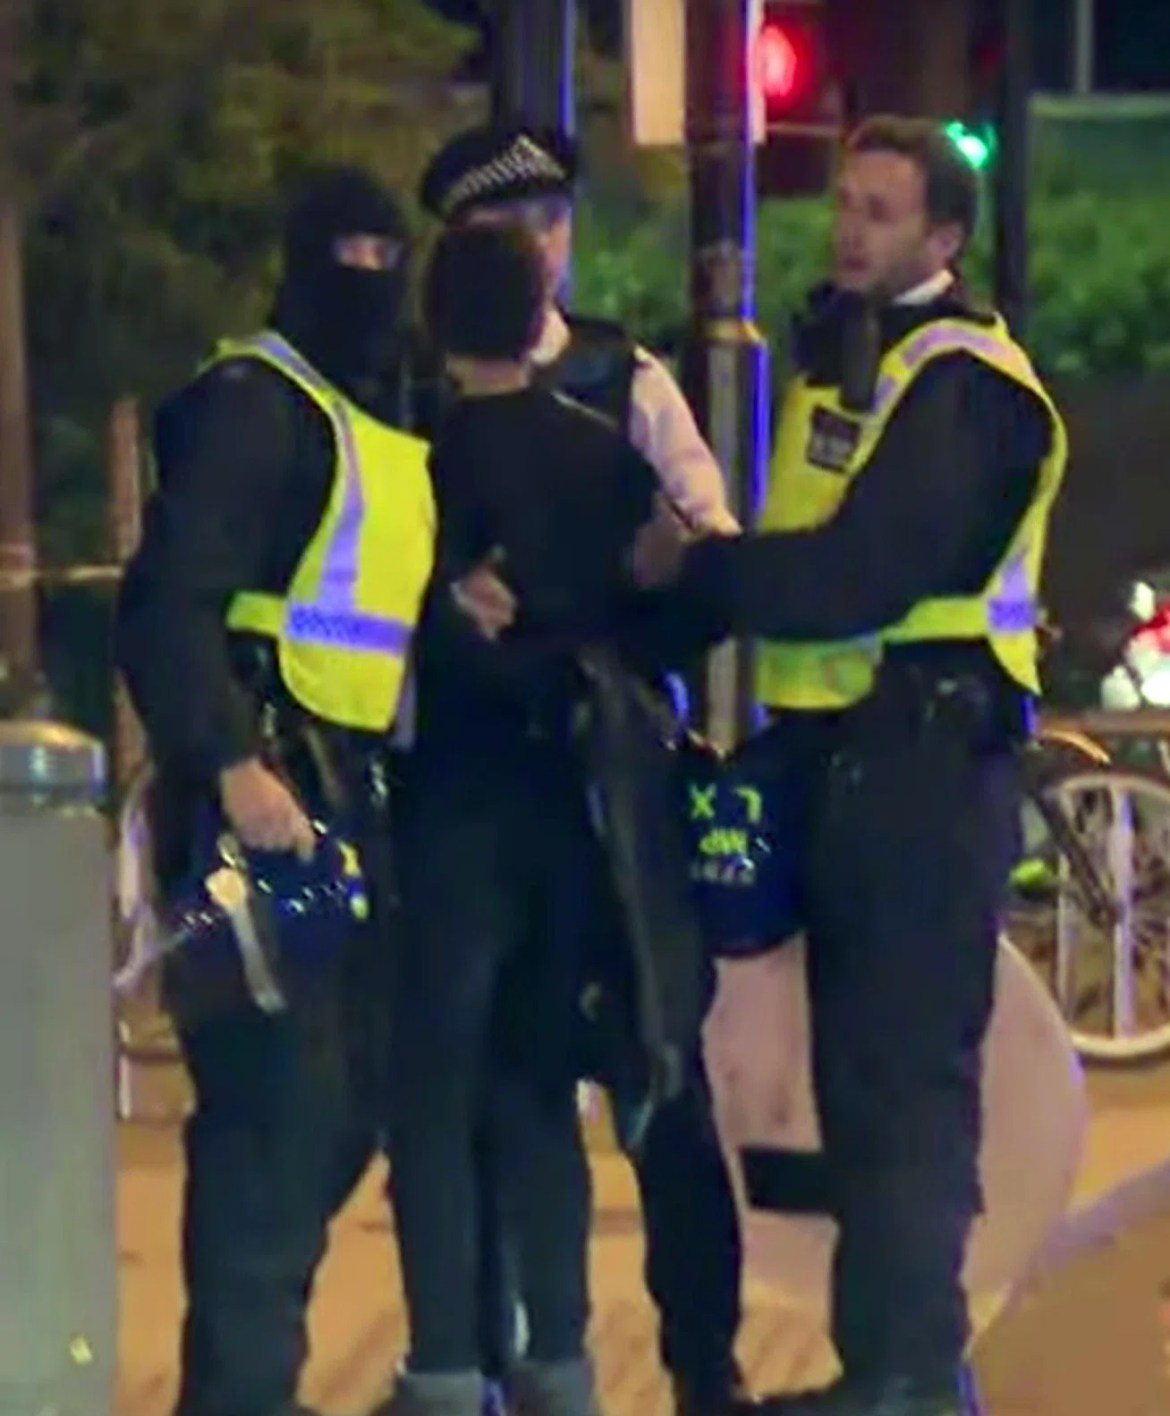 Three cops, one of whom is masked, are pictured arresting the suspect